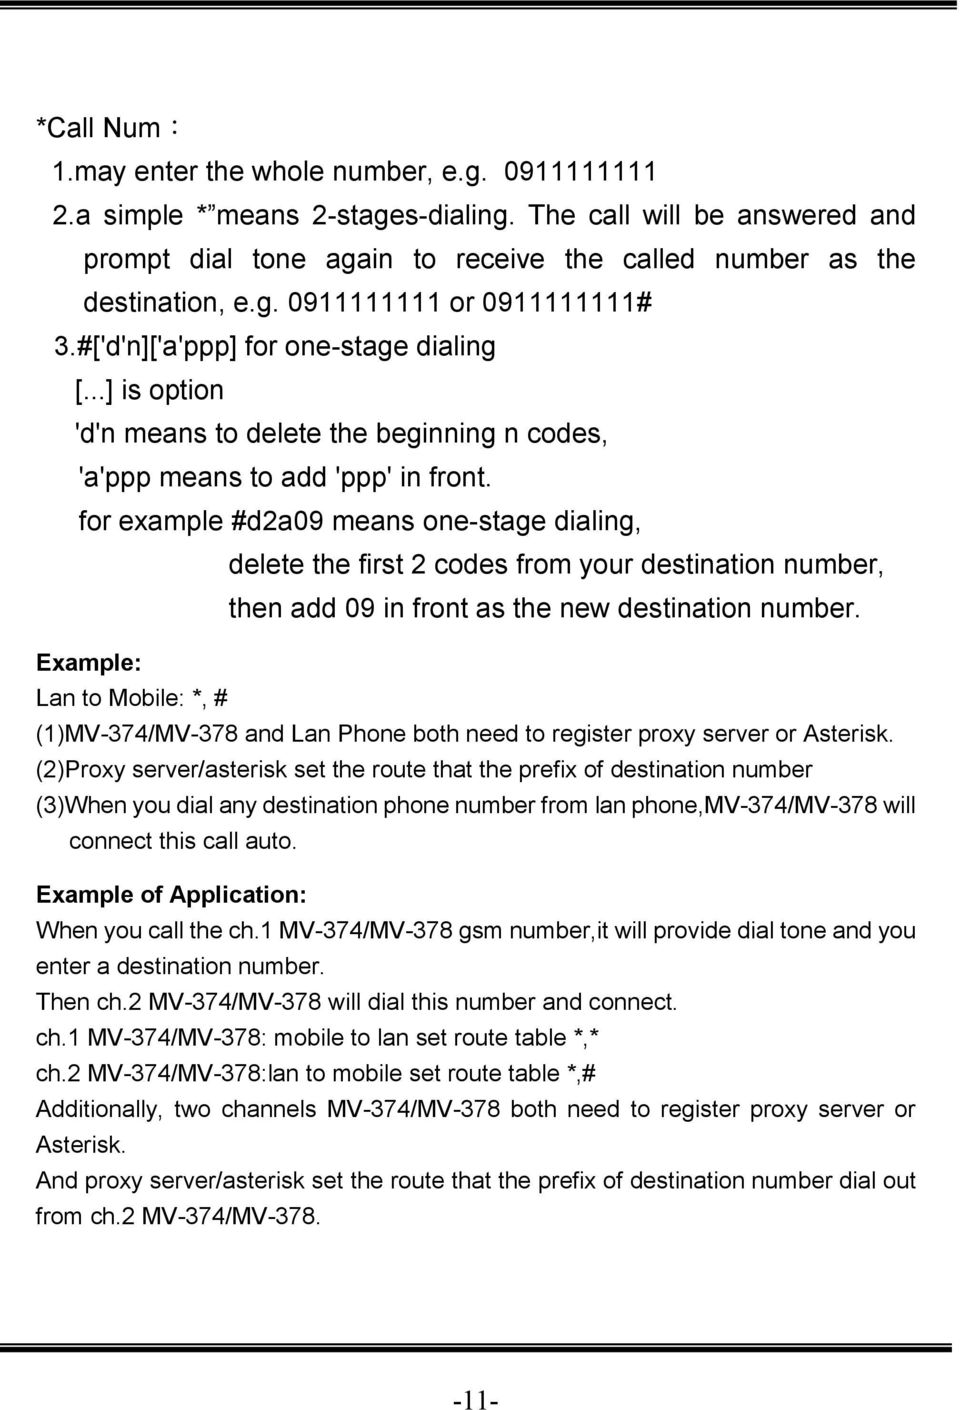 for example #d2a09 means one-stage dialing, delete the first 2 codes from your destination number, then add 09 in front as the new destination number.